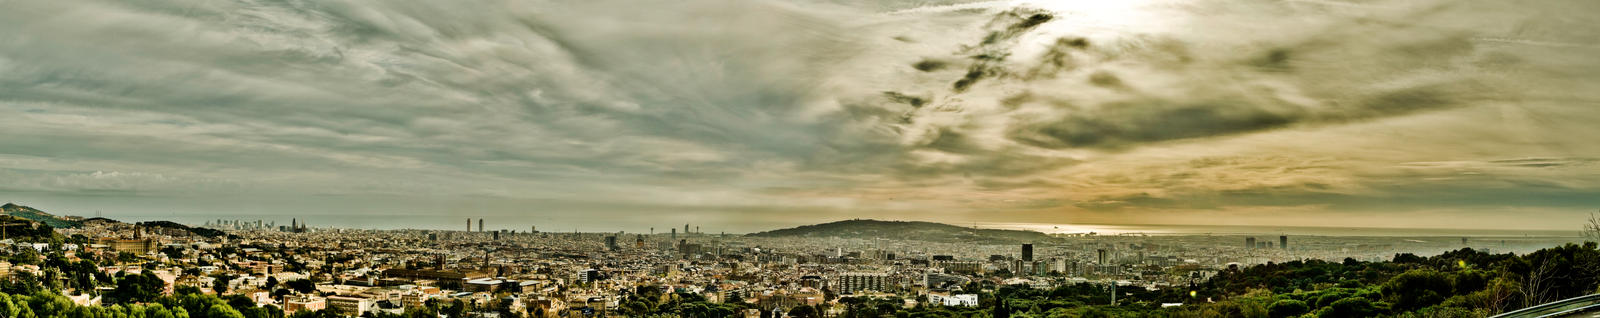 Barcelona panorama Dec2008 by BenKodjak